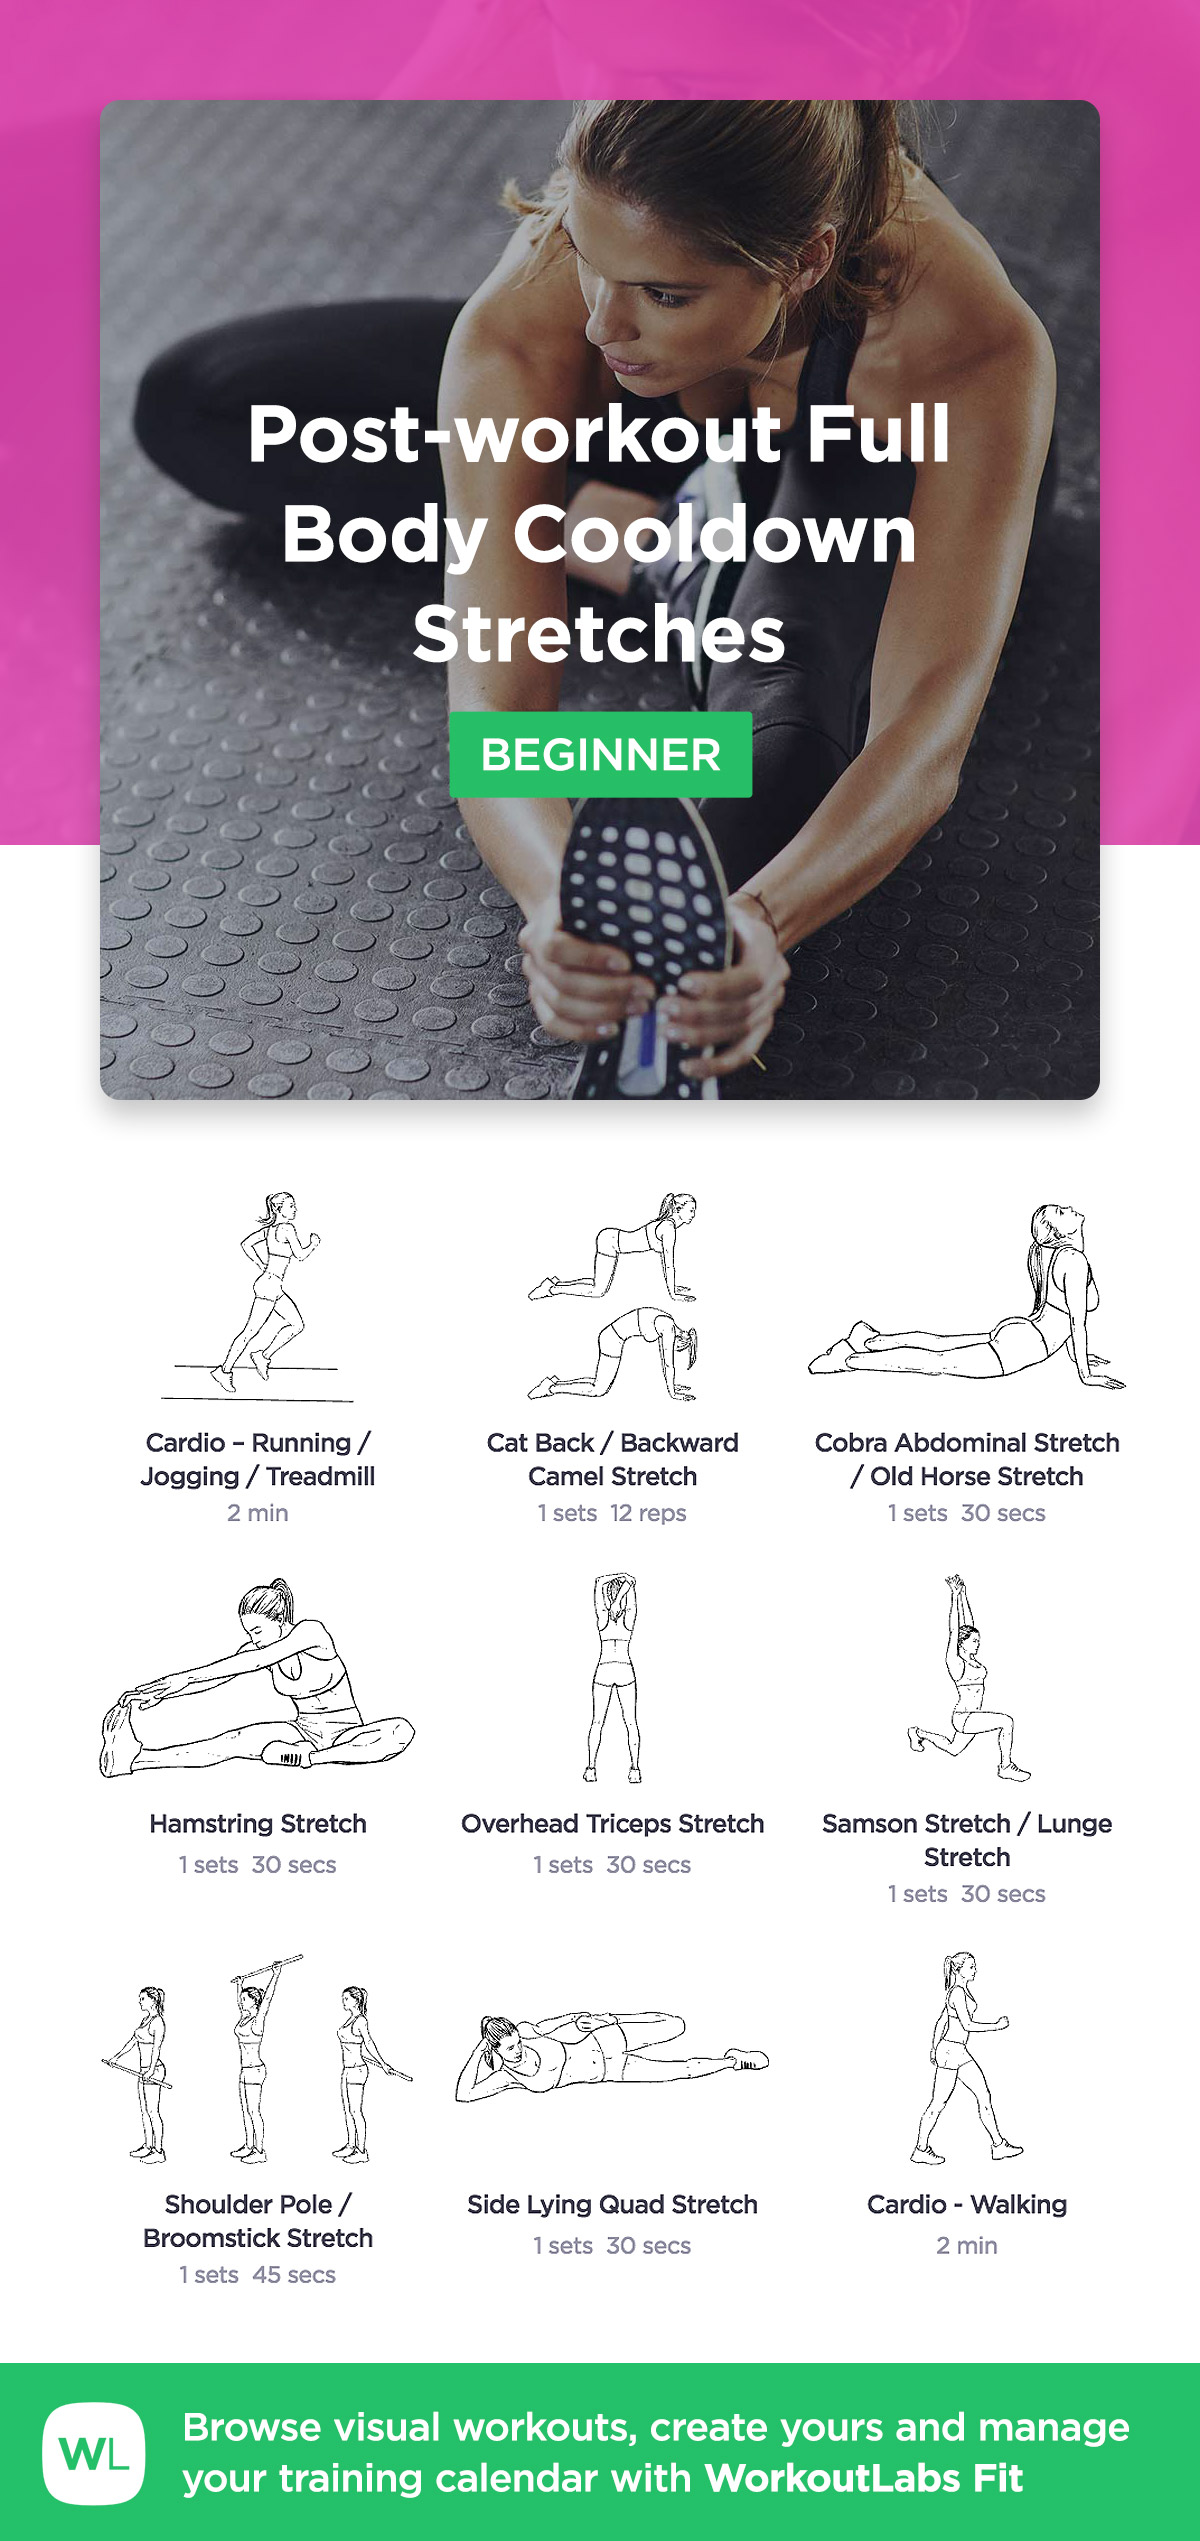 Post Workout Full Body Cooldown Stretches 183 Workoutlabs Fit